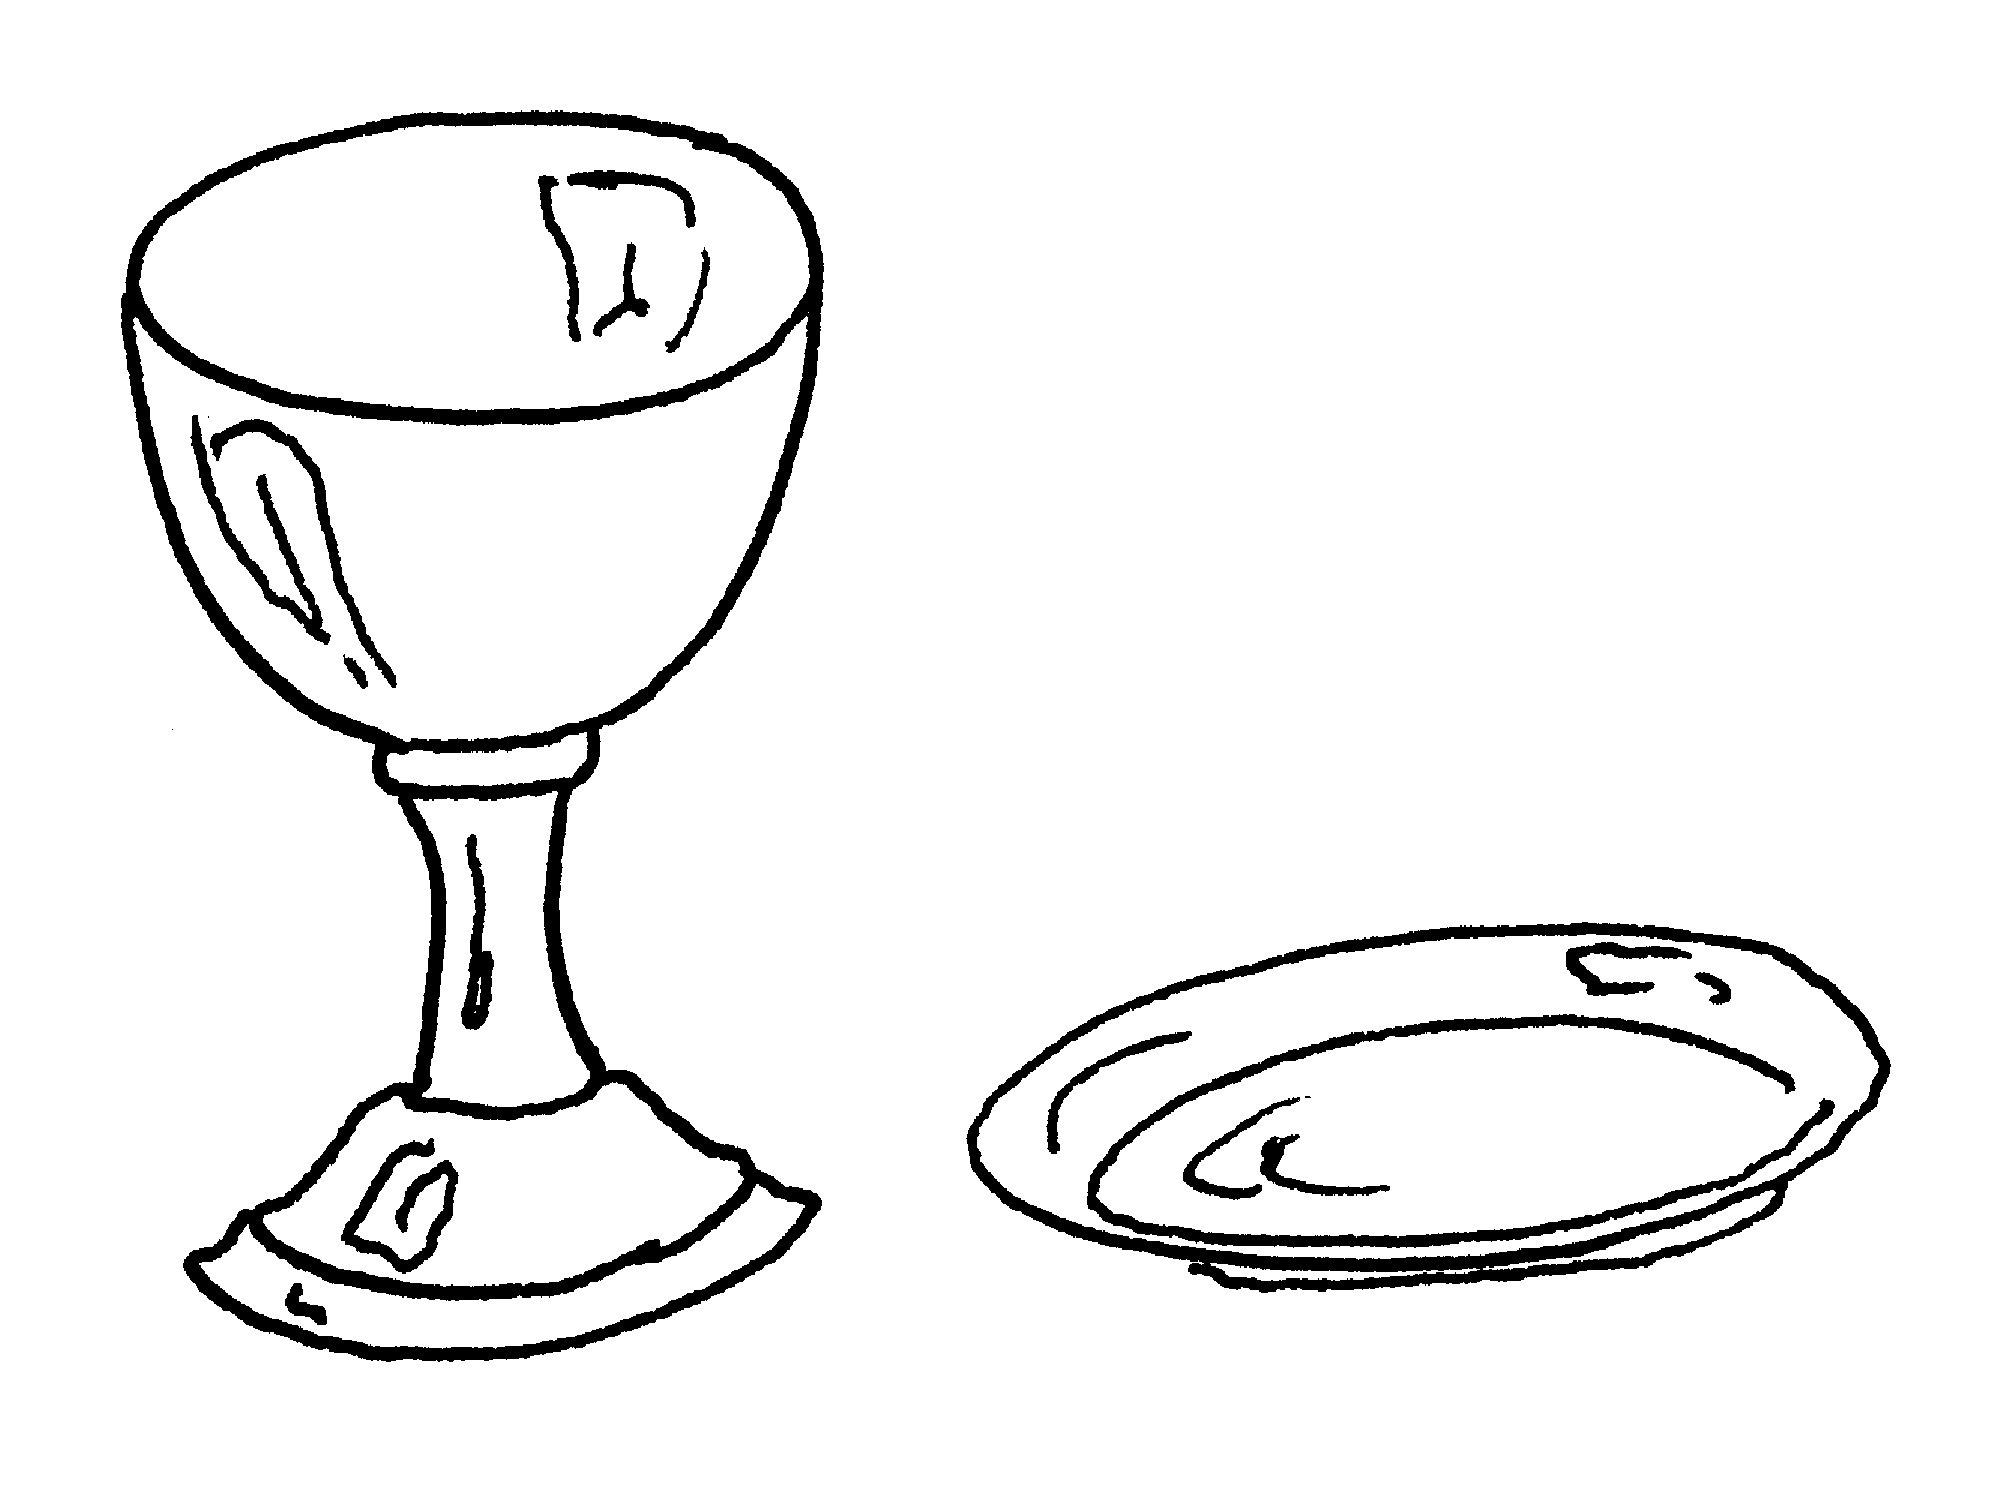 paten-and-chalice